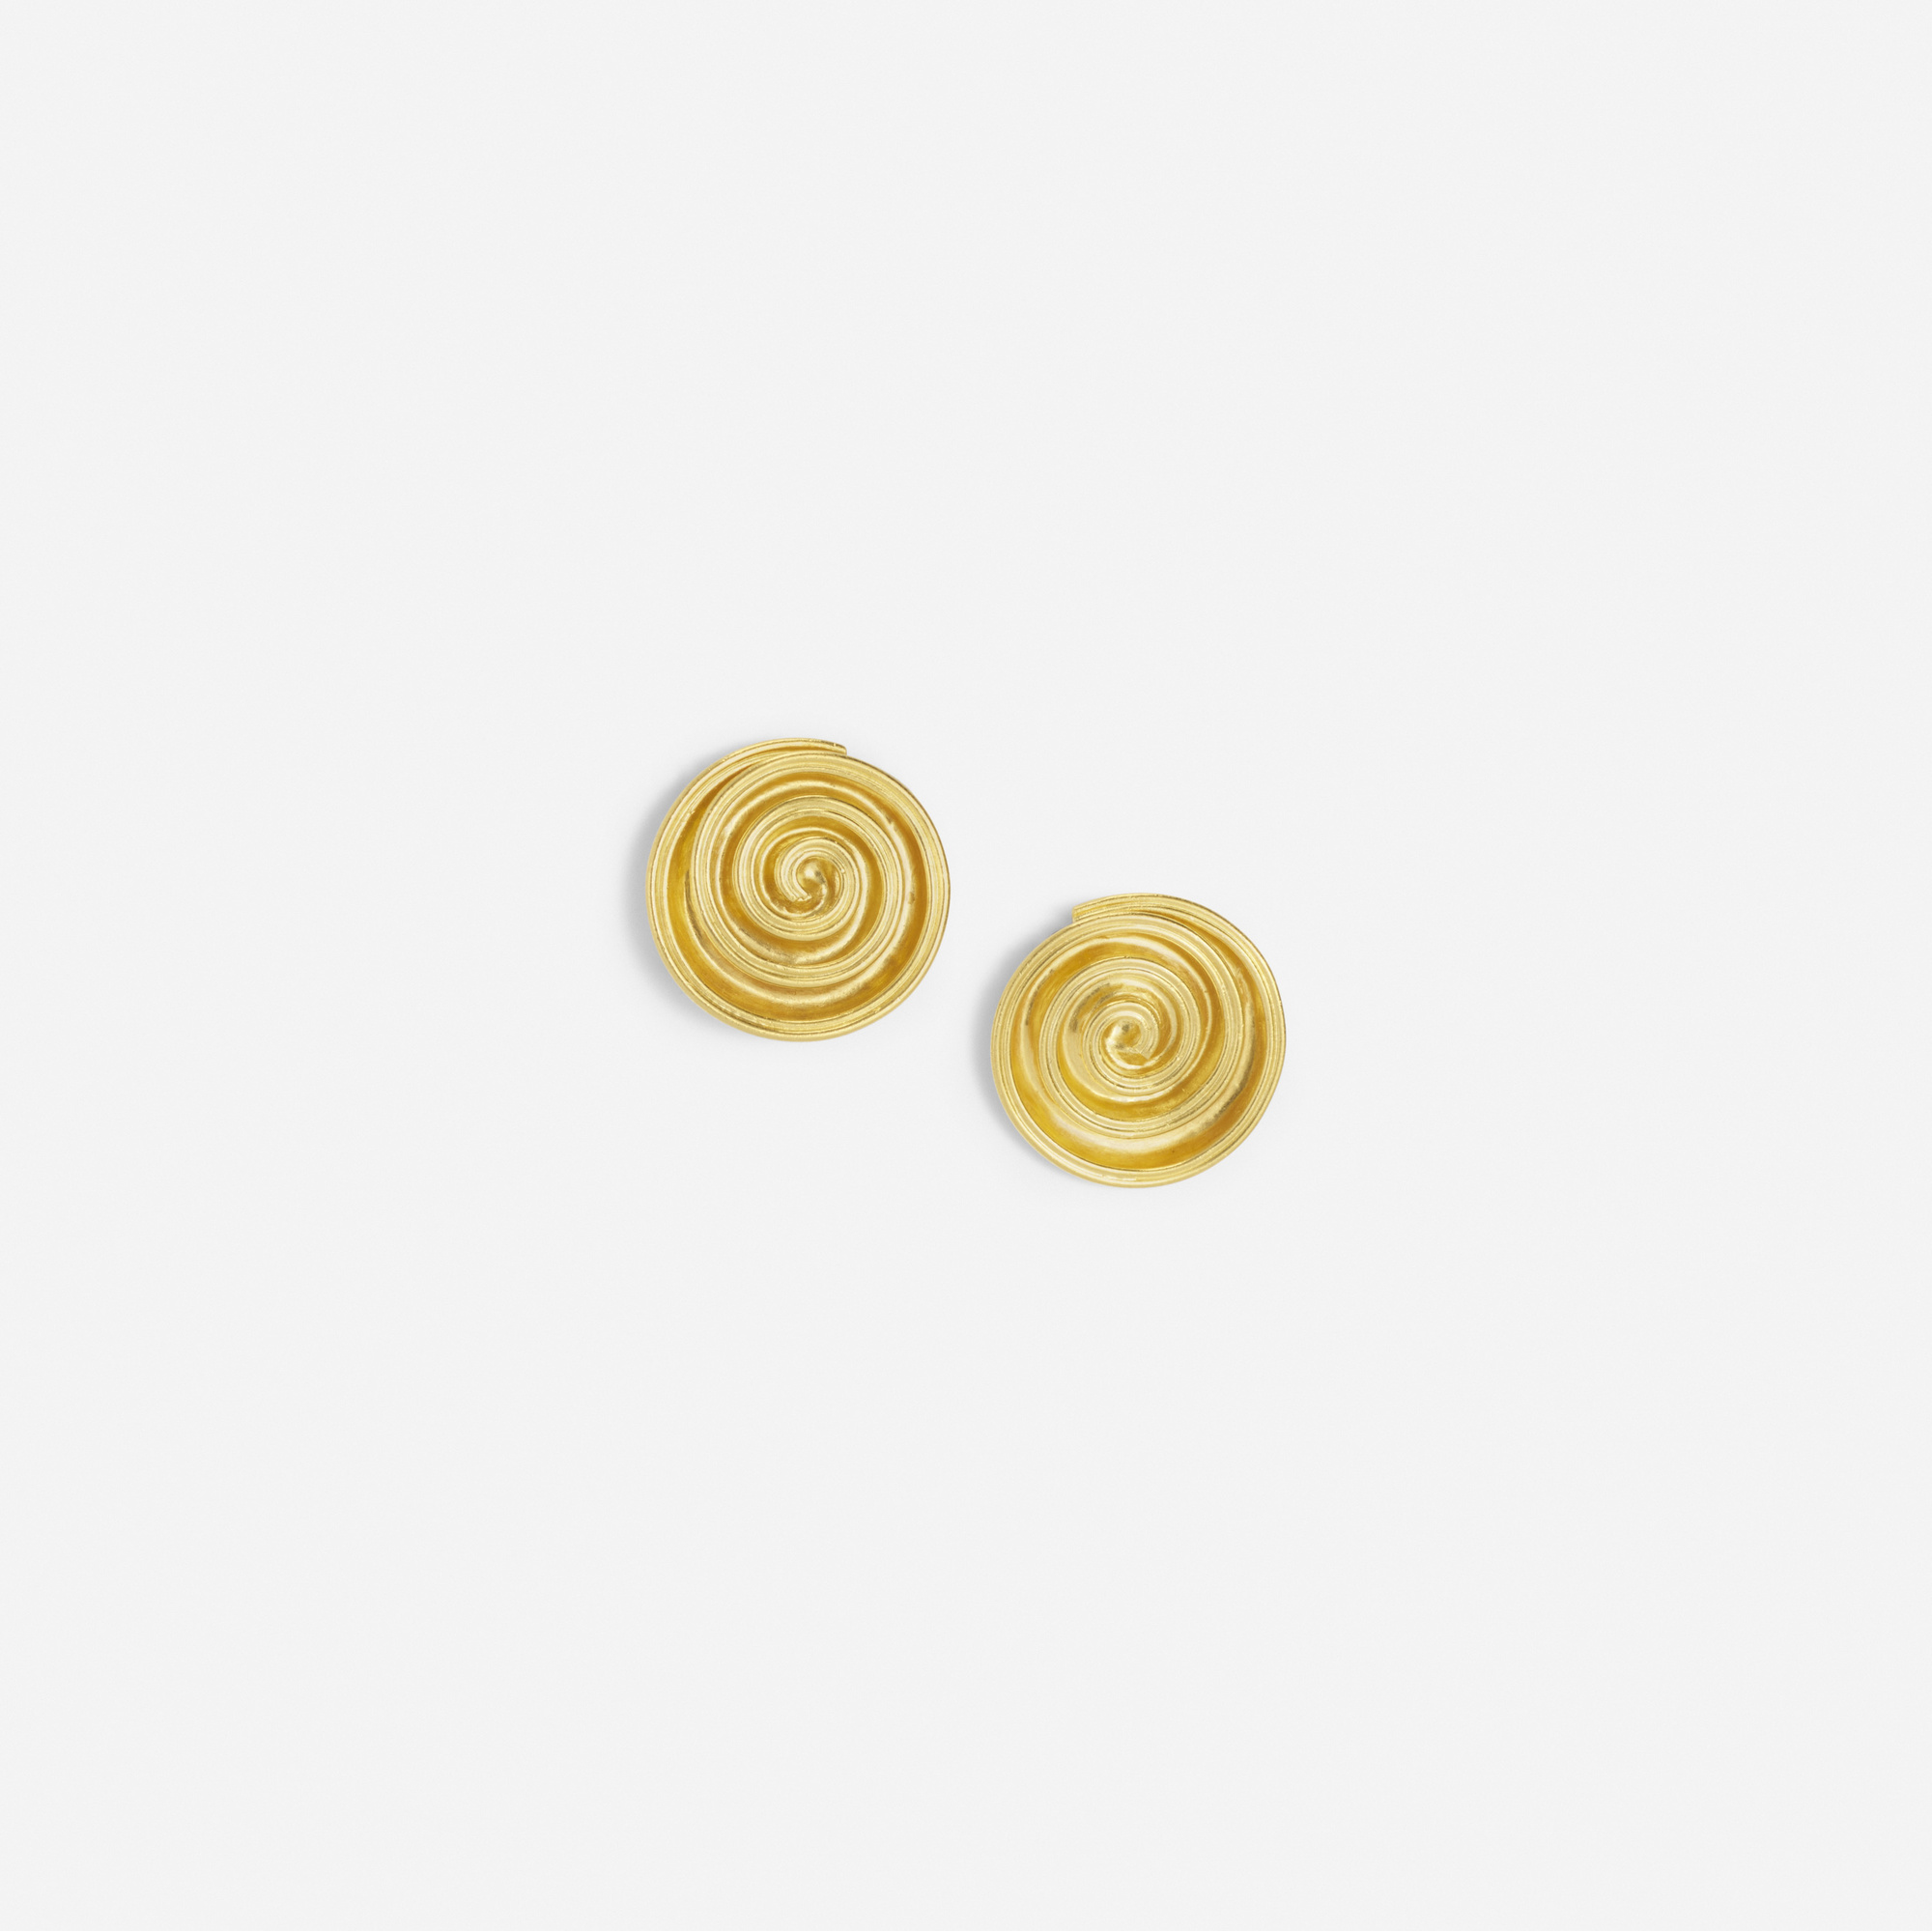 241: Lalaounis / A pair of gold earrings from the Minoan & Mycenaean Collection (1 of 1)